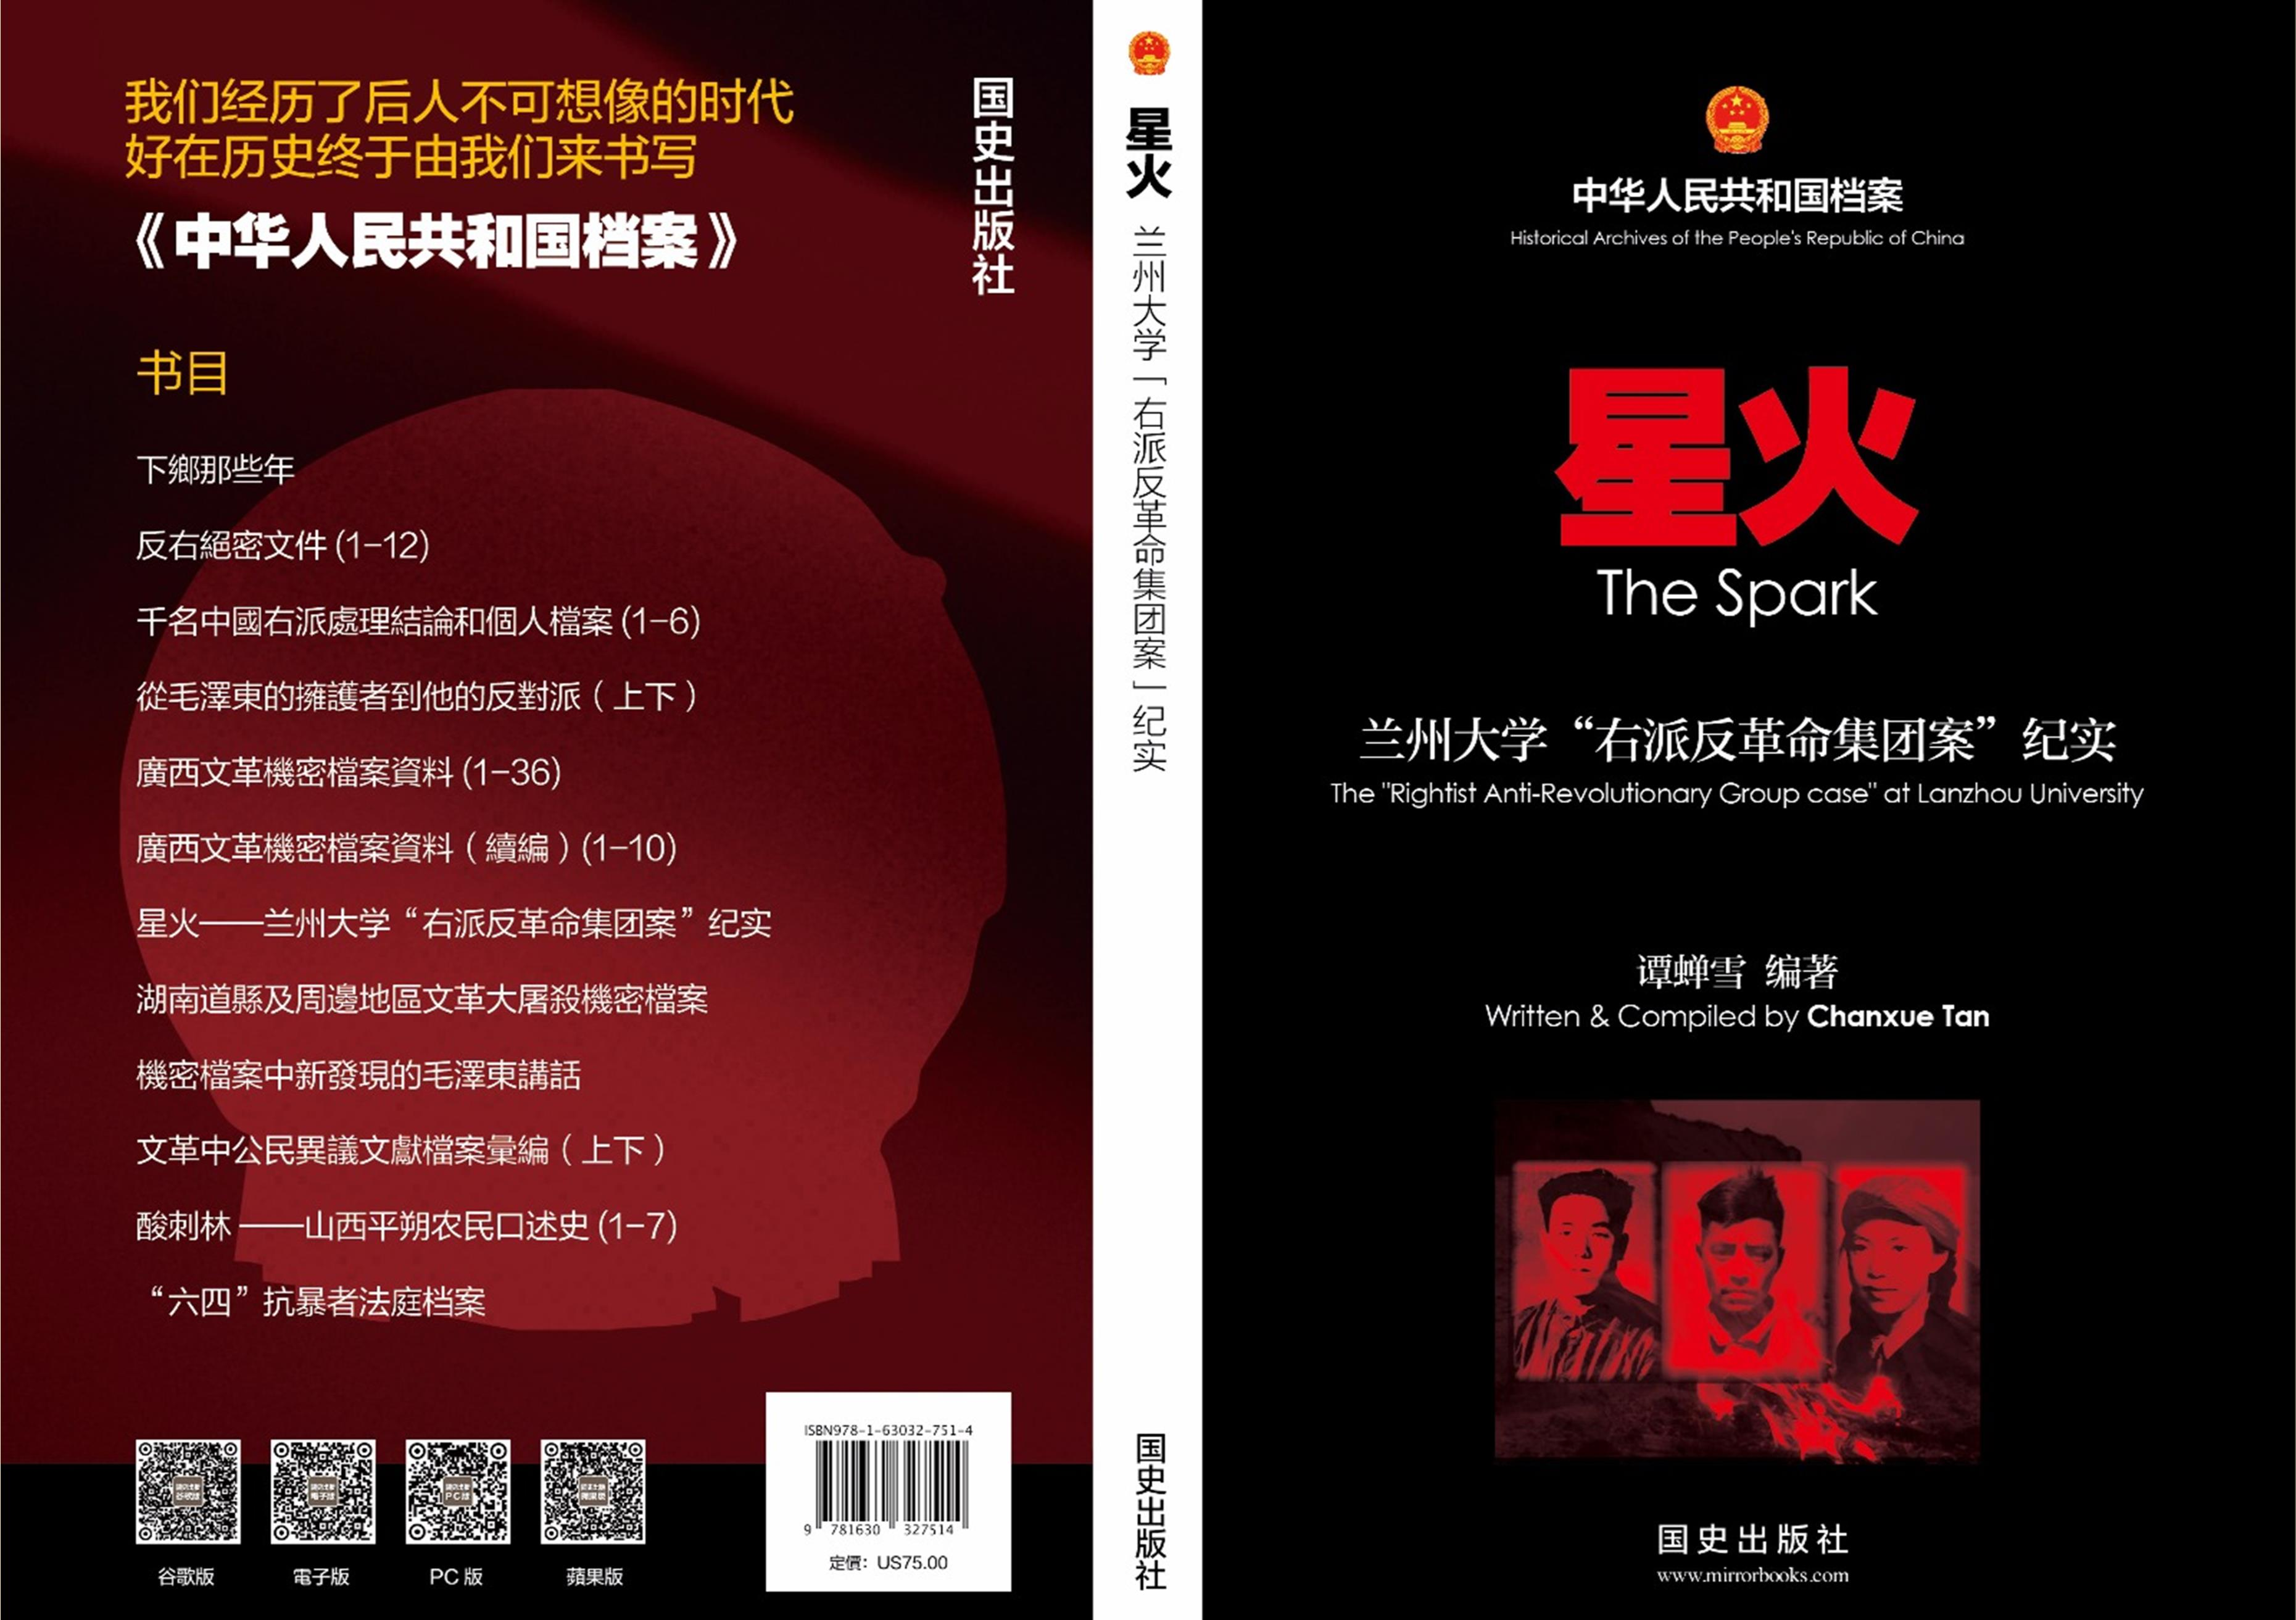 The Spark cover image